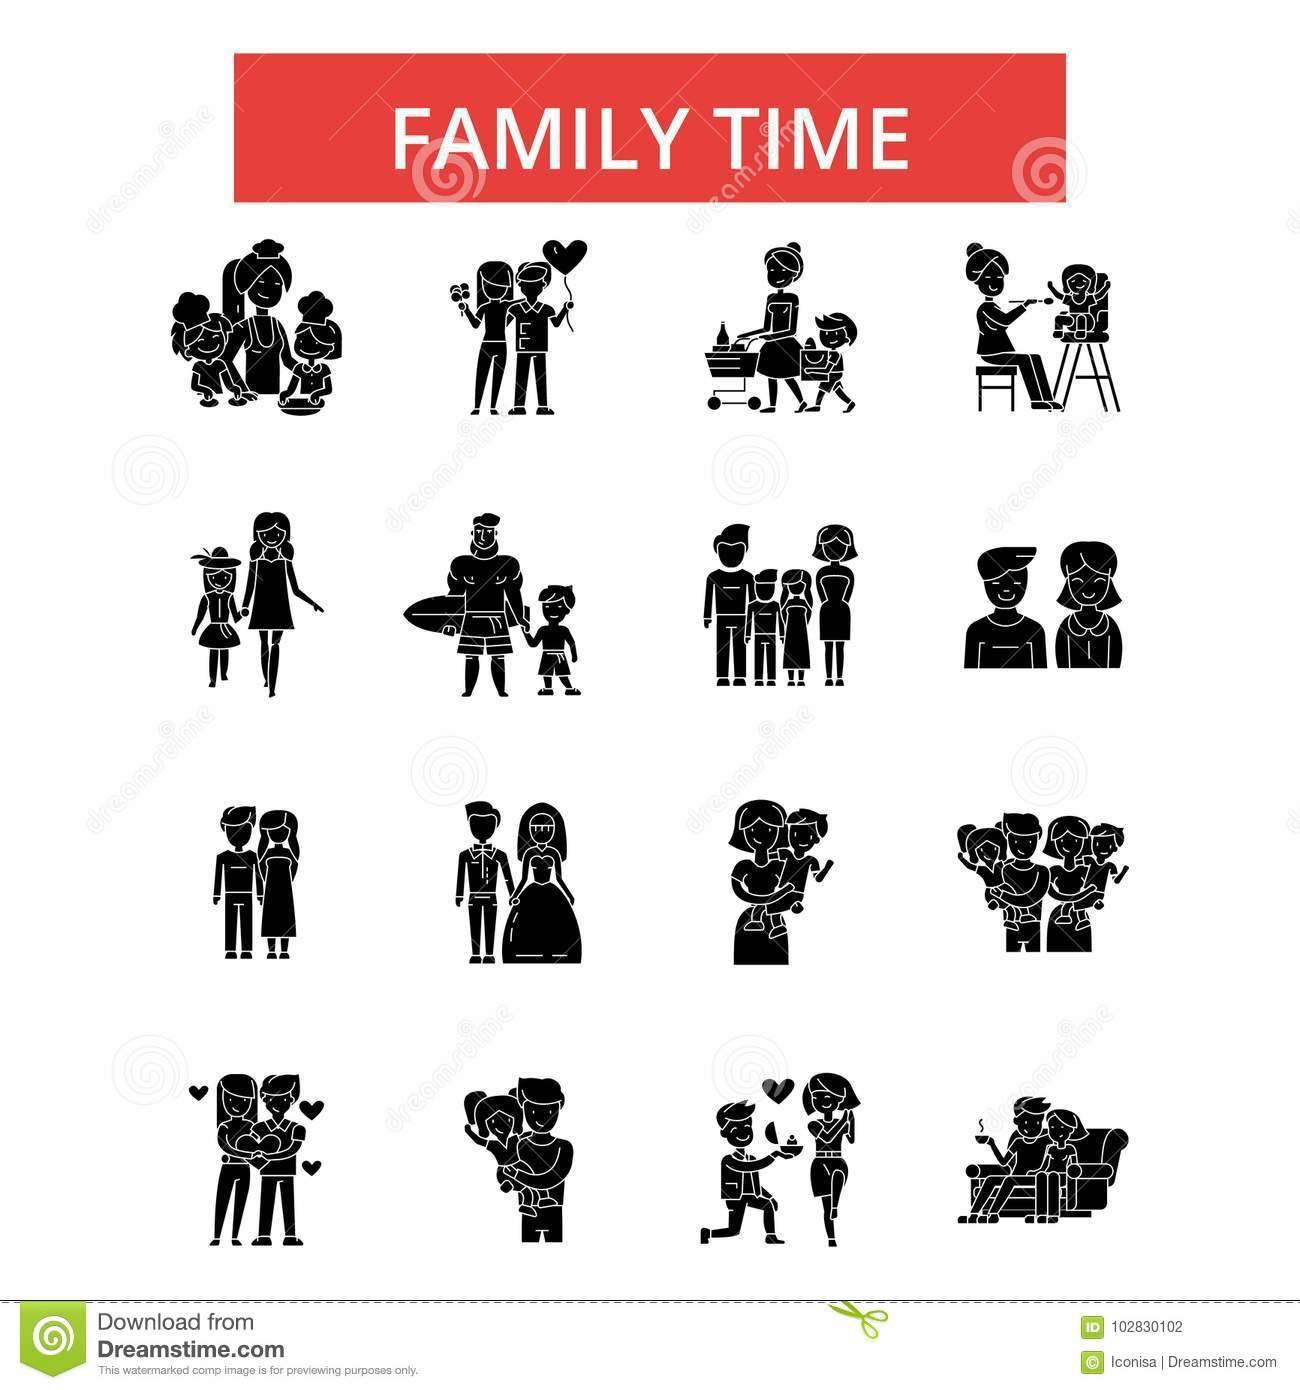 Family time illustration, thin line icons, linear flat signs, vector symbols